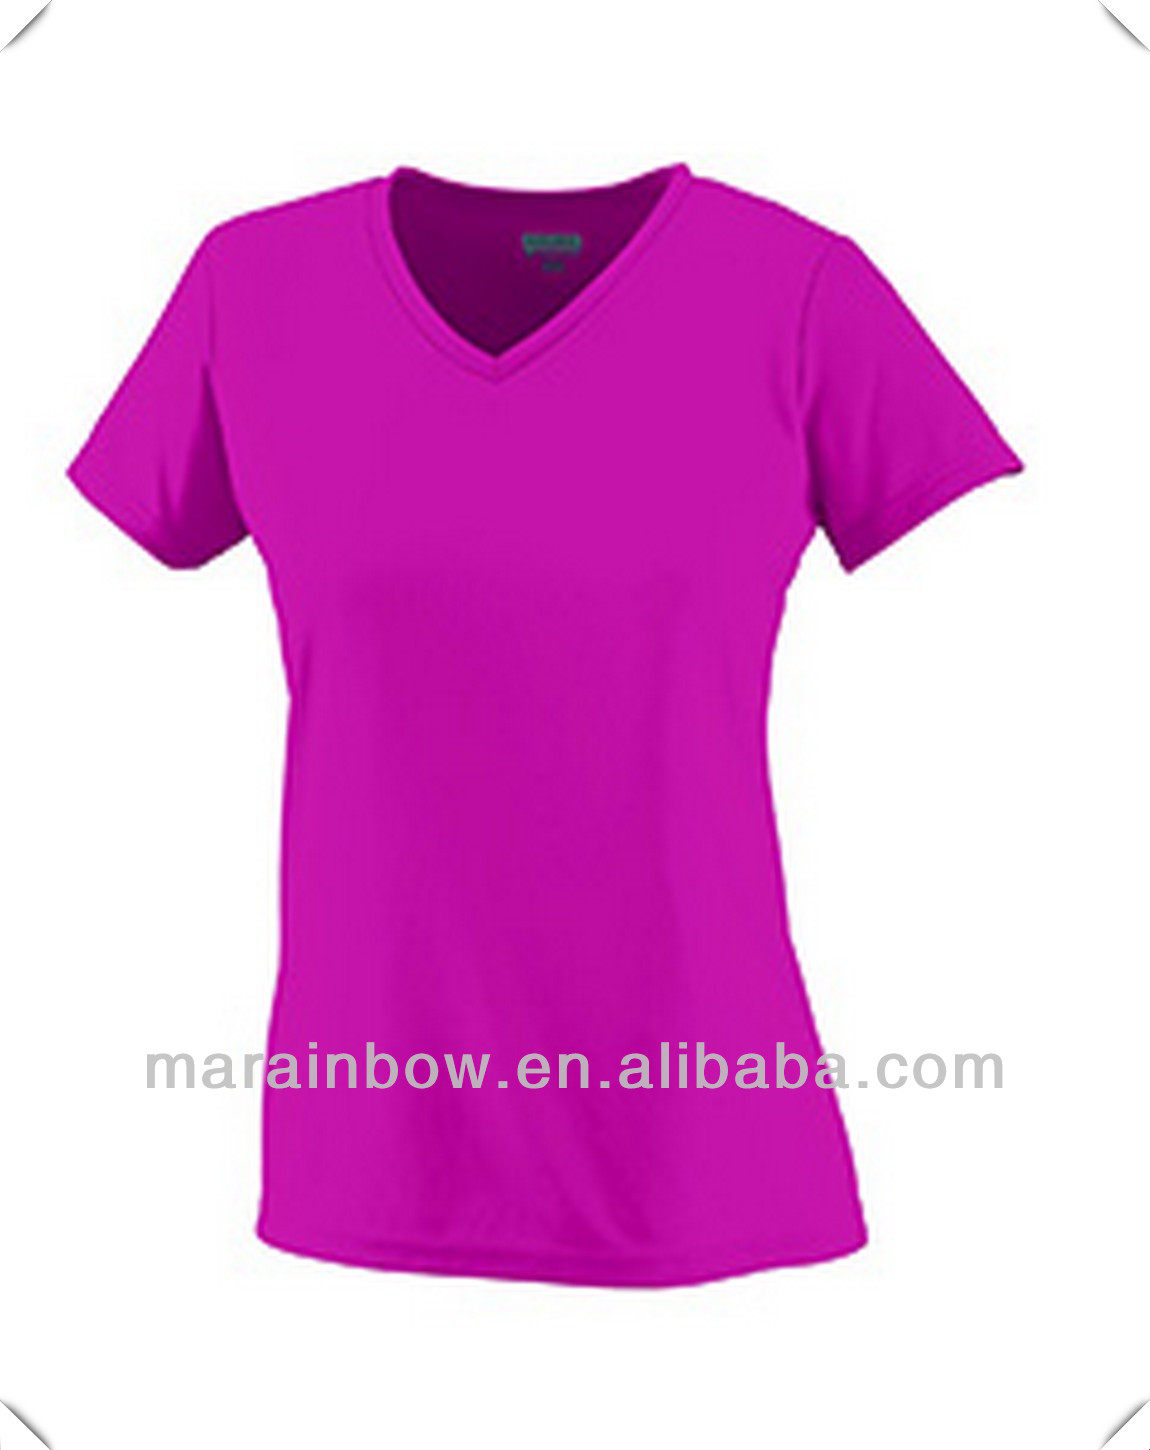 Girls 100% polyester wicking T-Shirt with Heat sealed label,V neck collar,Double needle hemmed sleeves and bottom